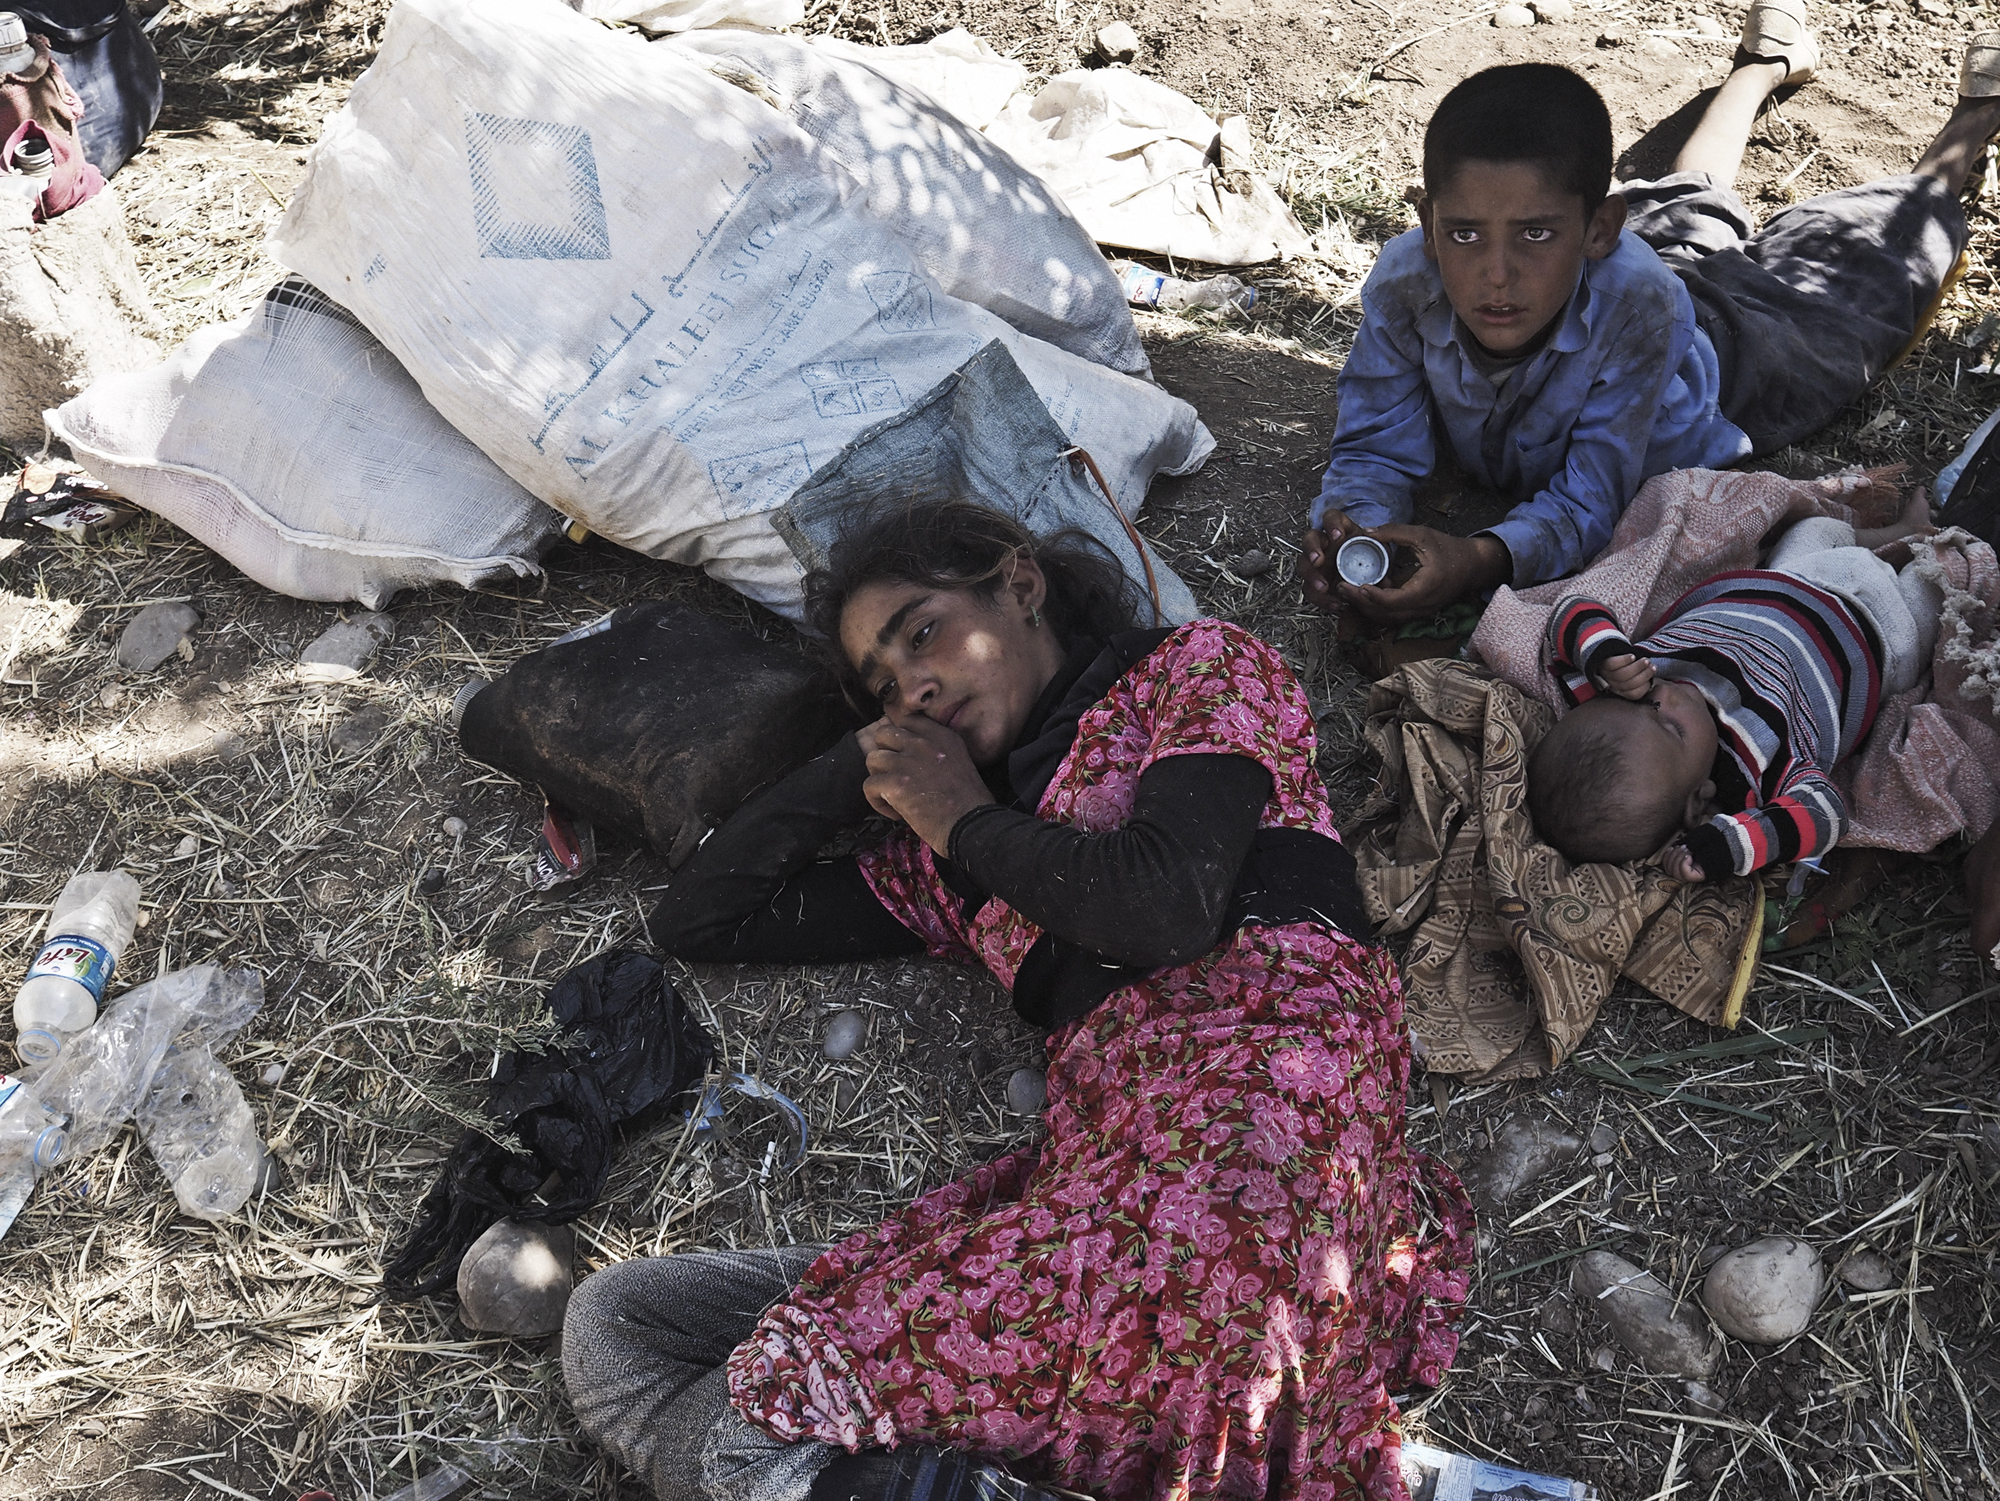 14-year-old Tawaf Ismail, a Yazidi girl from Sinjar, rests next to her brothers after arriving at the Fishkhabur border crossing between Iraq's Dohuk Province and Syria, Aug. 10, 2014.